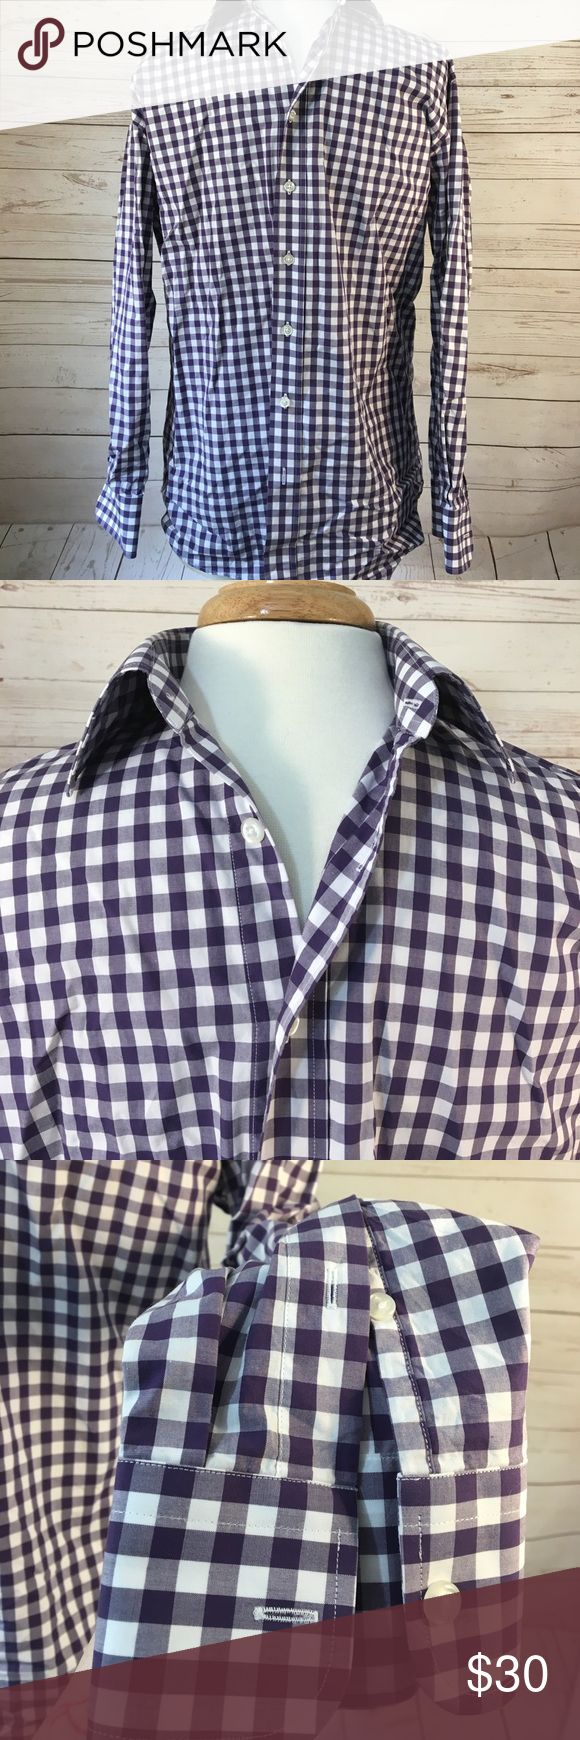 Modern Tailor Dress shirt Custom made shirt that didn't fit because we didn't take proper measurements lol! Beautiful plum checkered fabric, stiff collar, strong buttons. Fits like a medium. Only worn once. Great for a wedding guest under a suit. Modern Tailor Shirts Dress Shirts